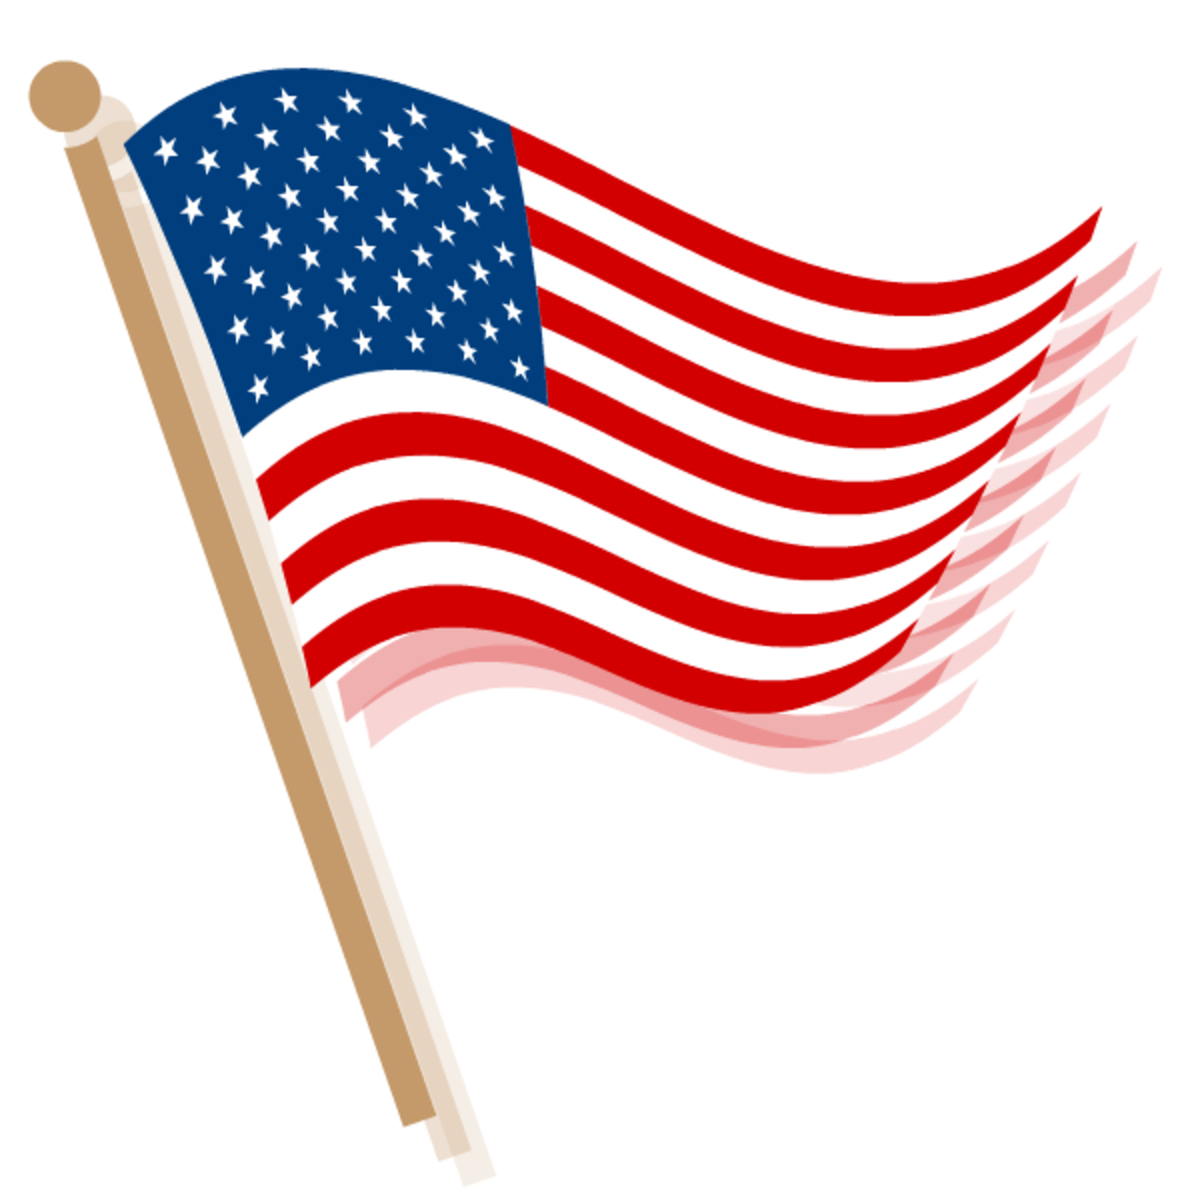 Please scroll down to see all the free patriotic American flag clip art